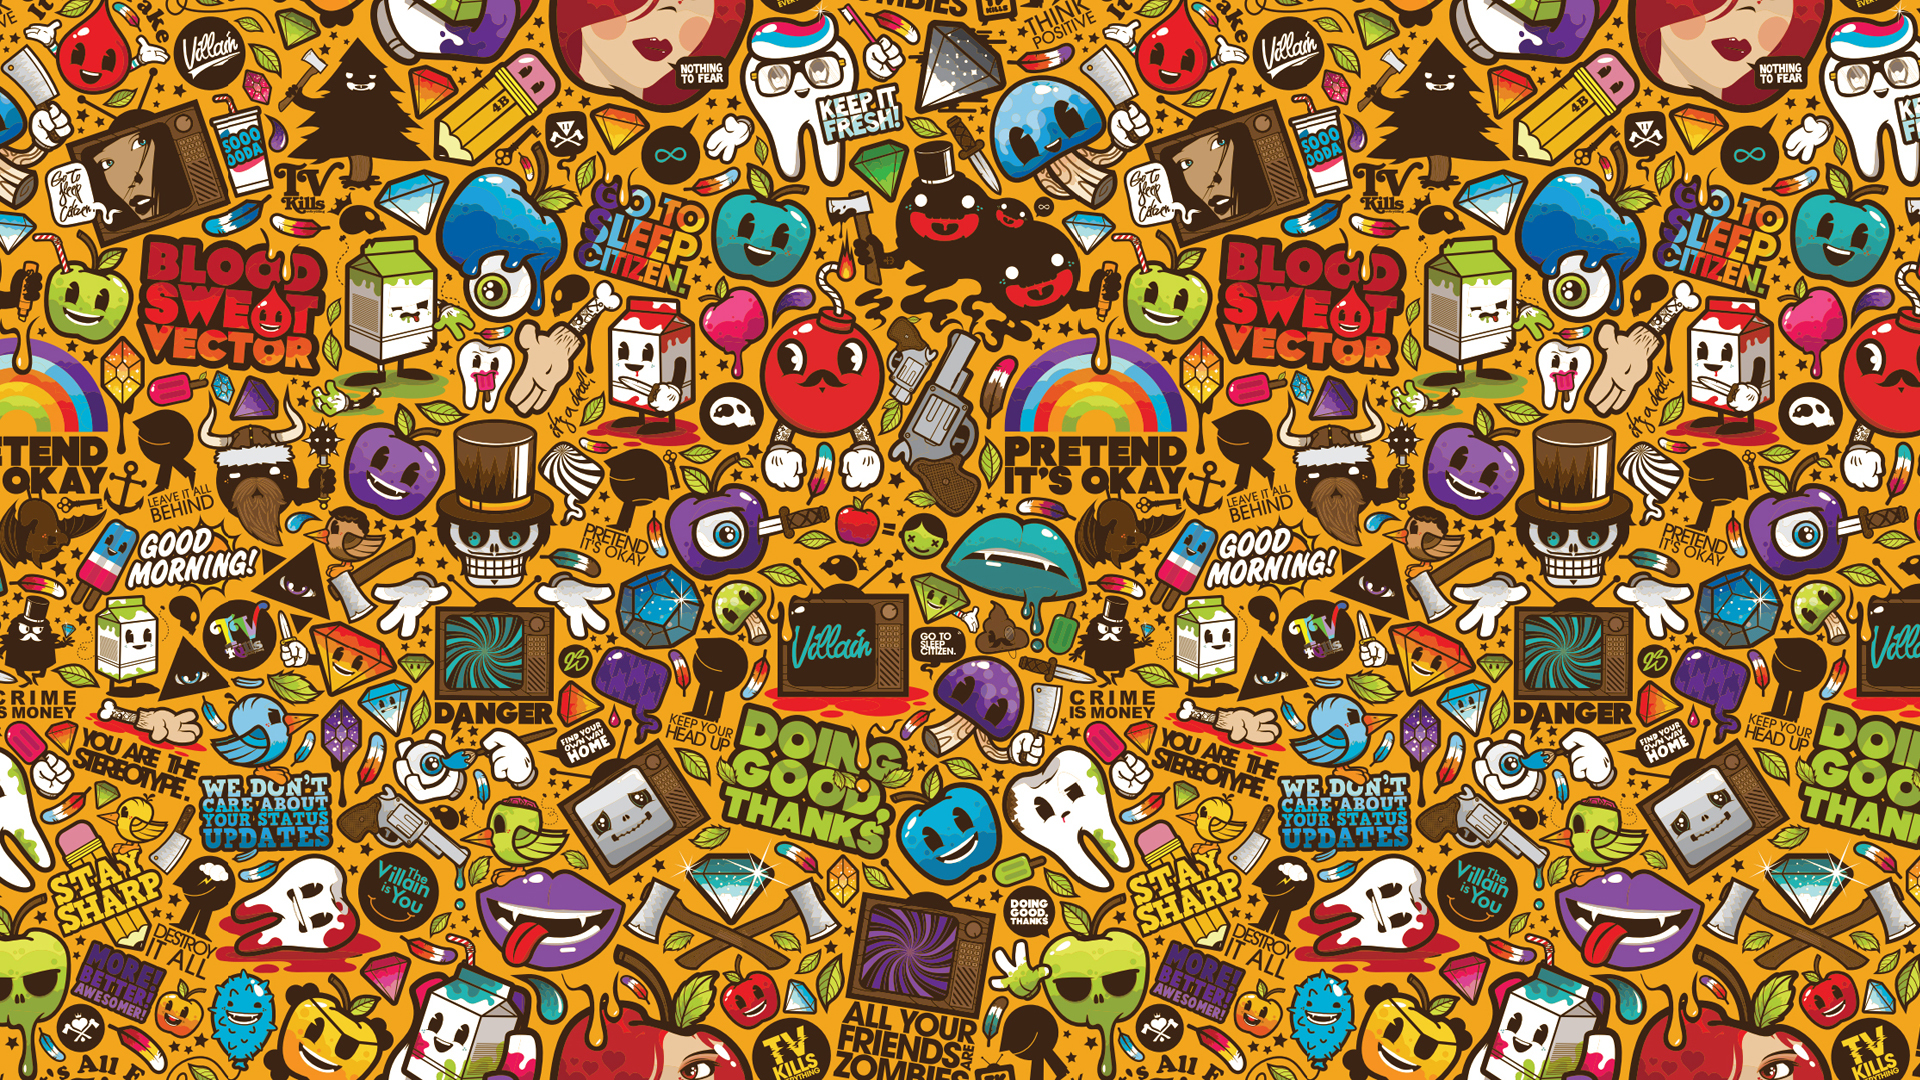 Sticker Bomb Hd Wallpaper Background Image 1920x1080 Interiors Inside Ideas Interiors design about Everything [magnanprojects.com]